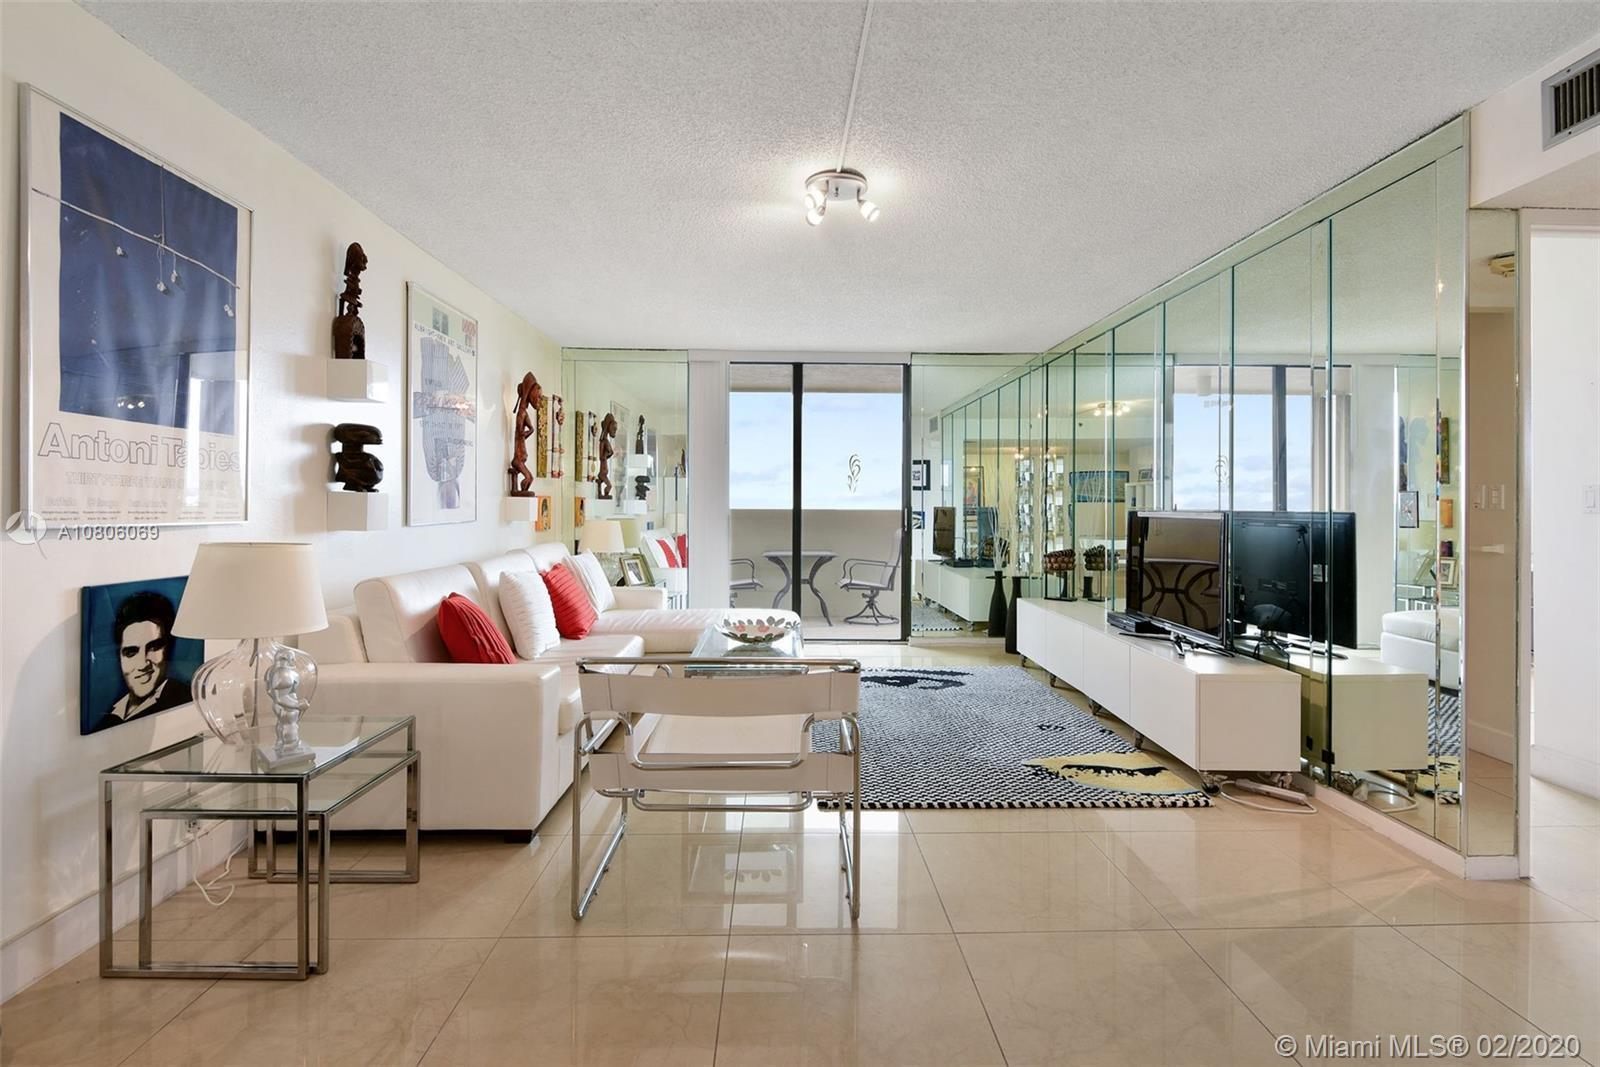 This  2 bed, 2 bath, 1,088 sf beachfront property is located in the heart of SoBe and has 3 separate